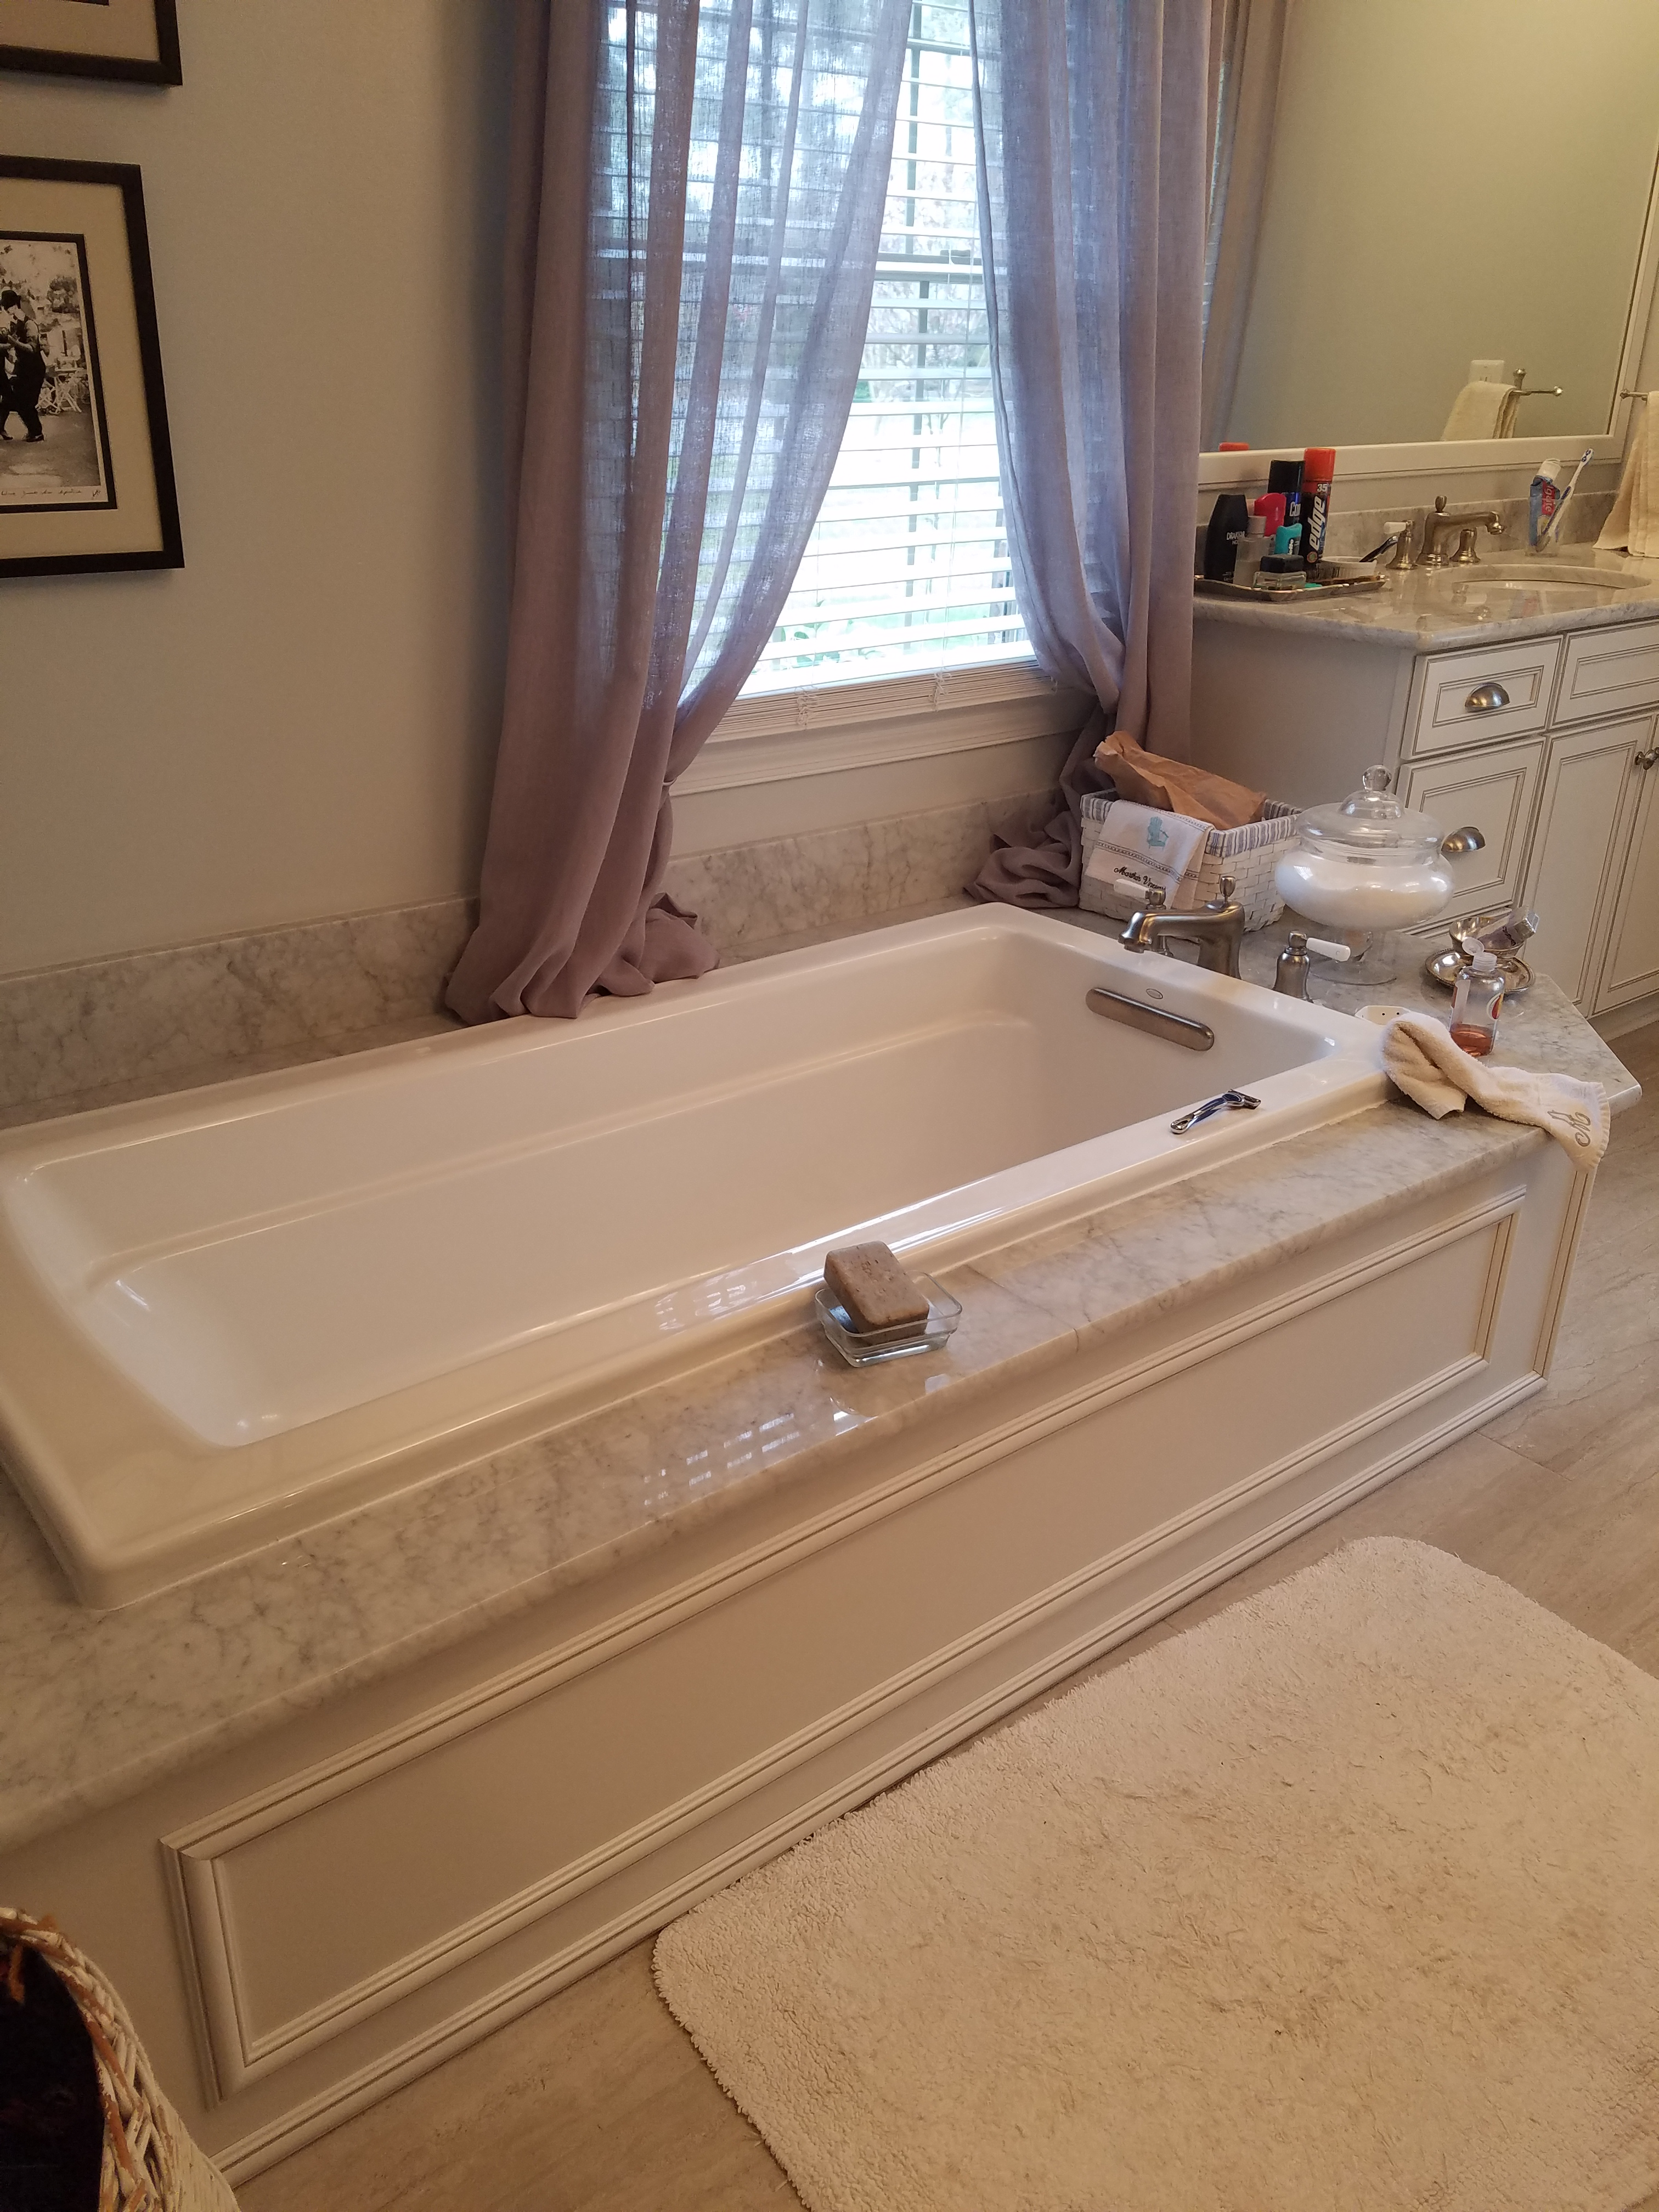 Wood paneled tub deck, carrara white